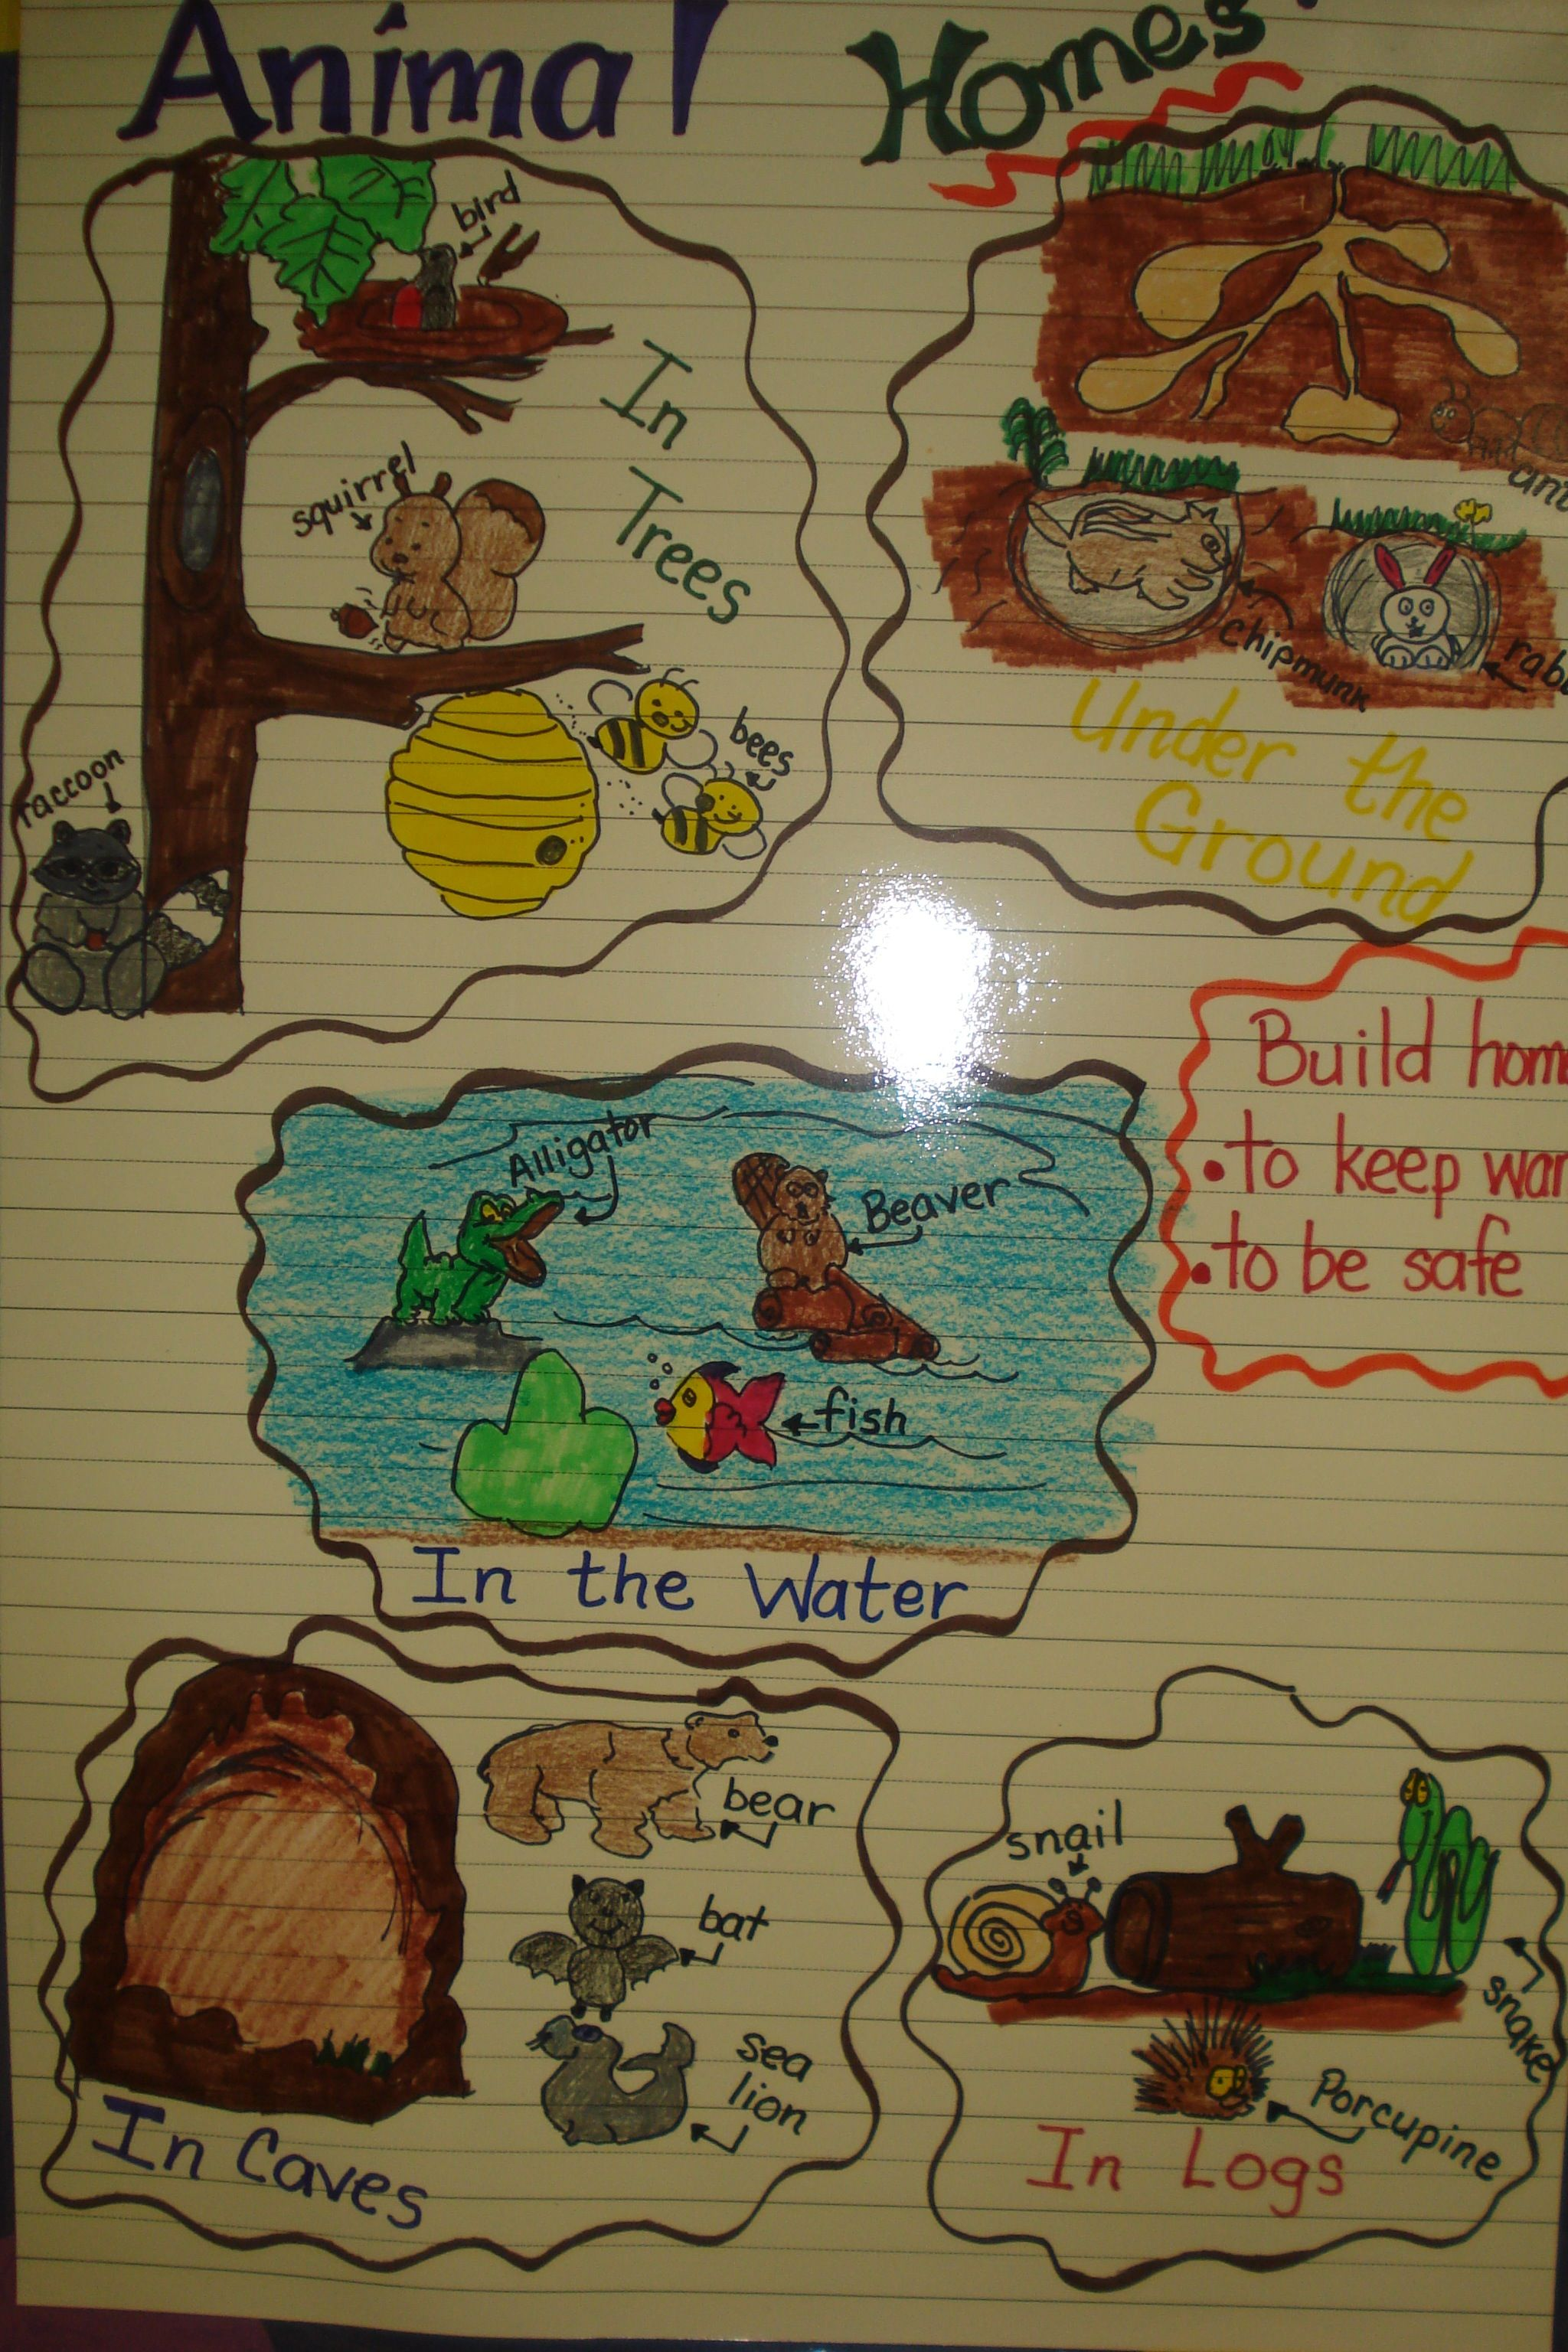 Animal Homes Chart At Thebilingualcafe Com Created By Hildelisa Diaz Animals And Their Homes Animal Lessons Art Wall Kids